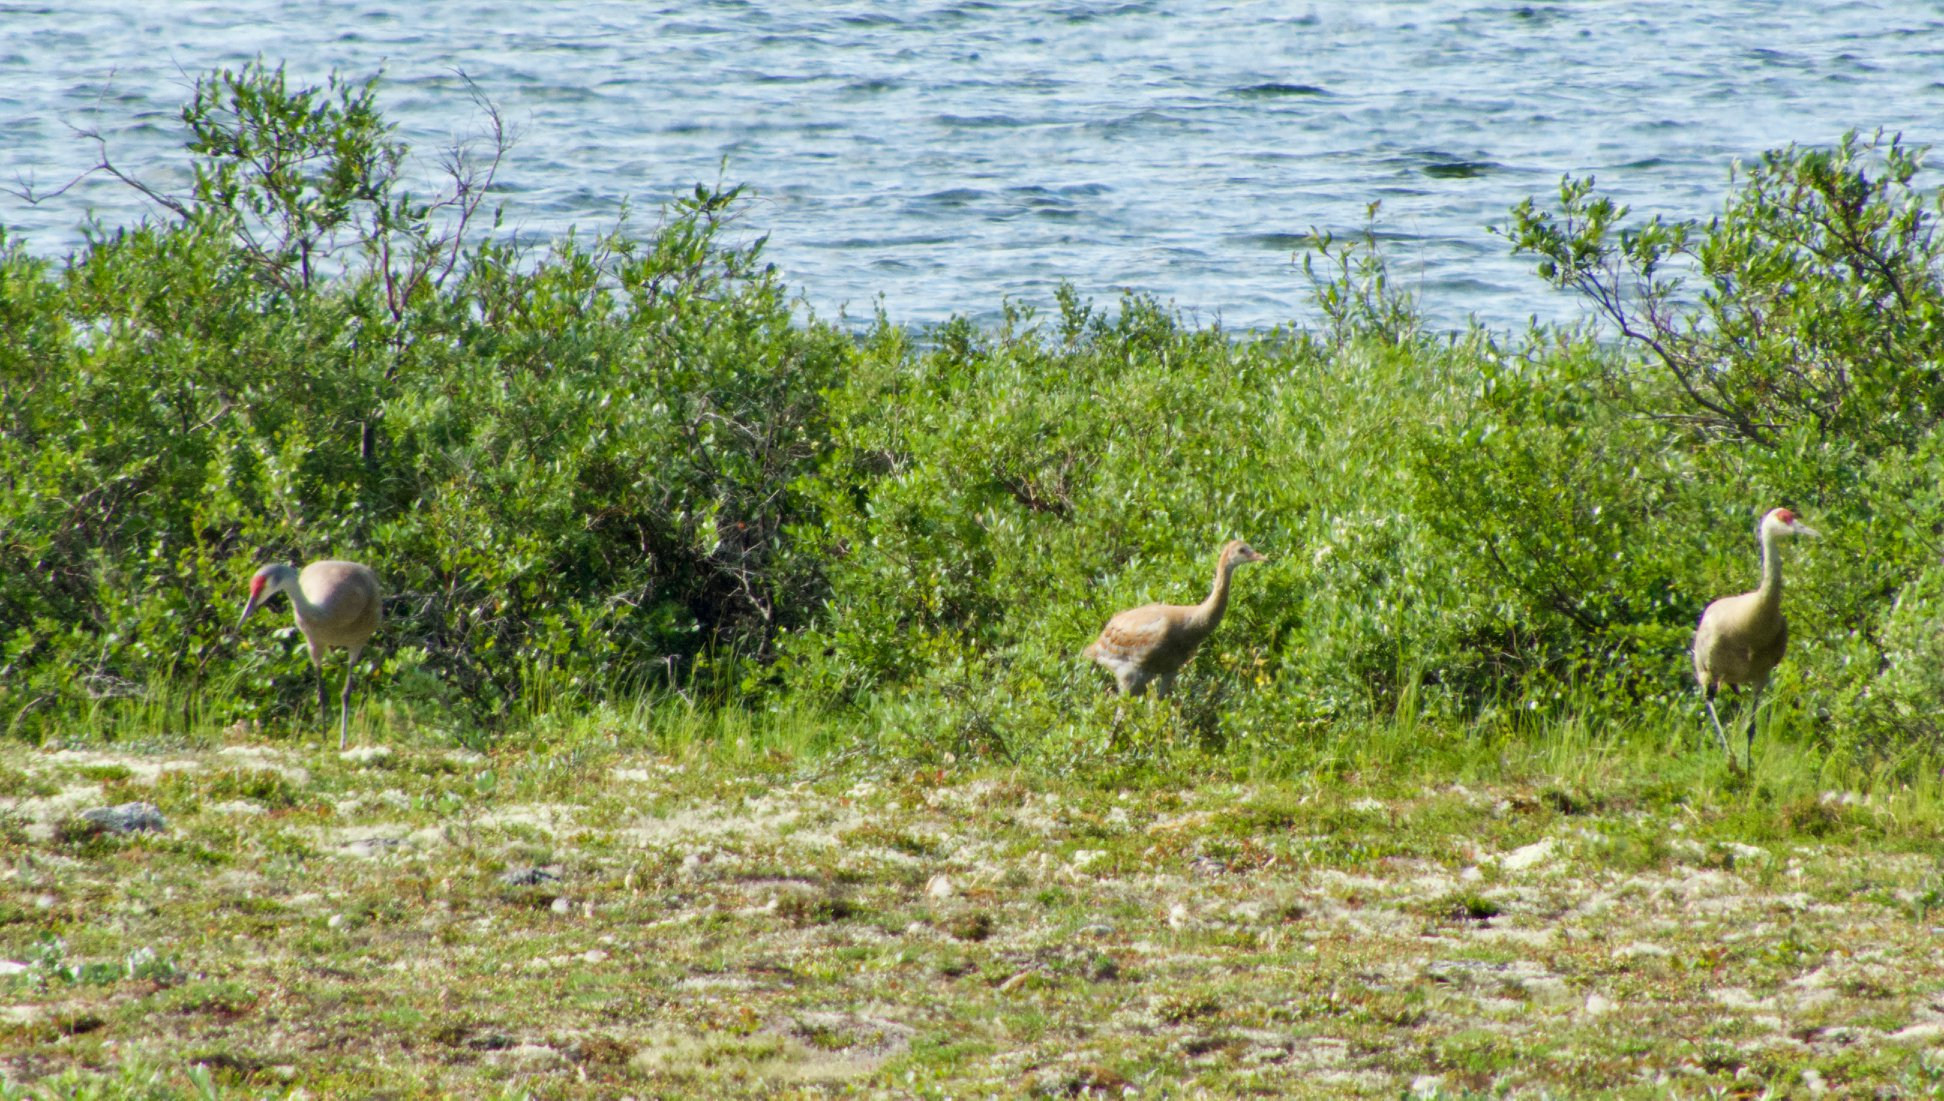 sandhill crane in Churchill Manitoba Canada